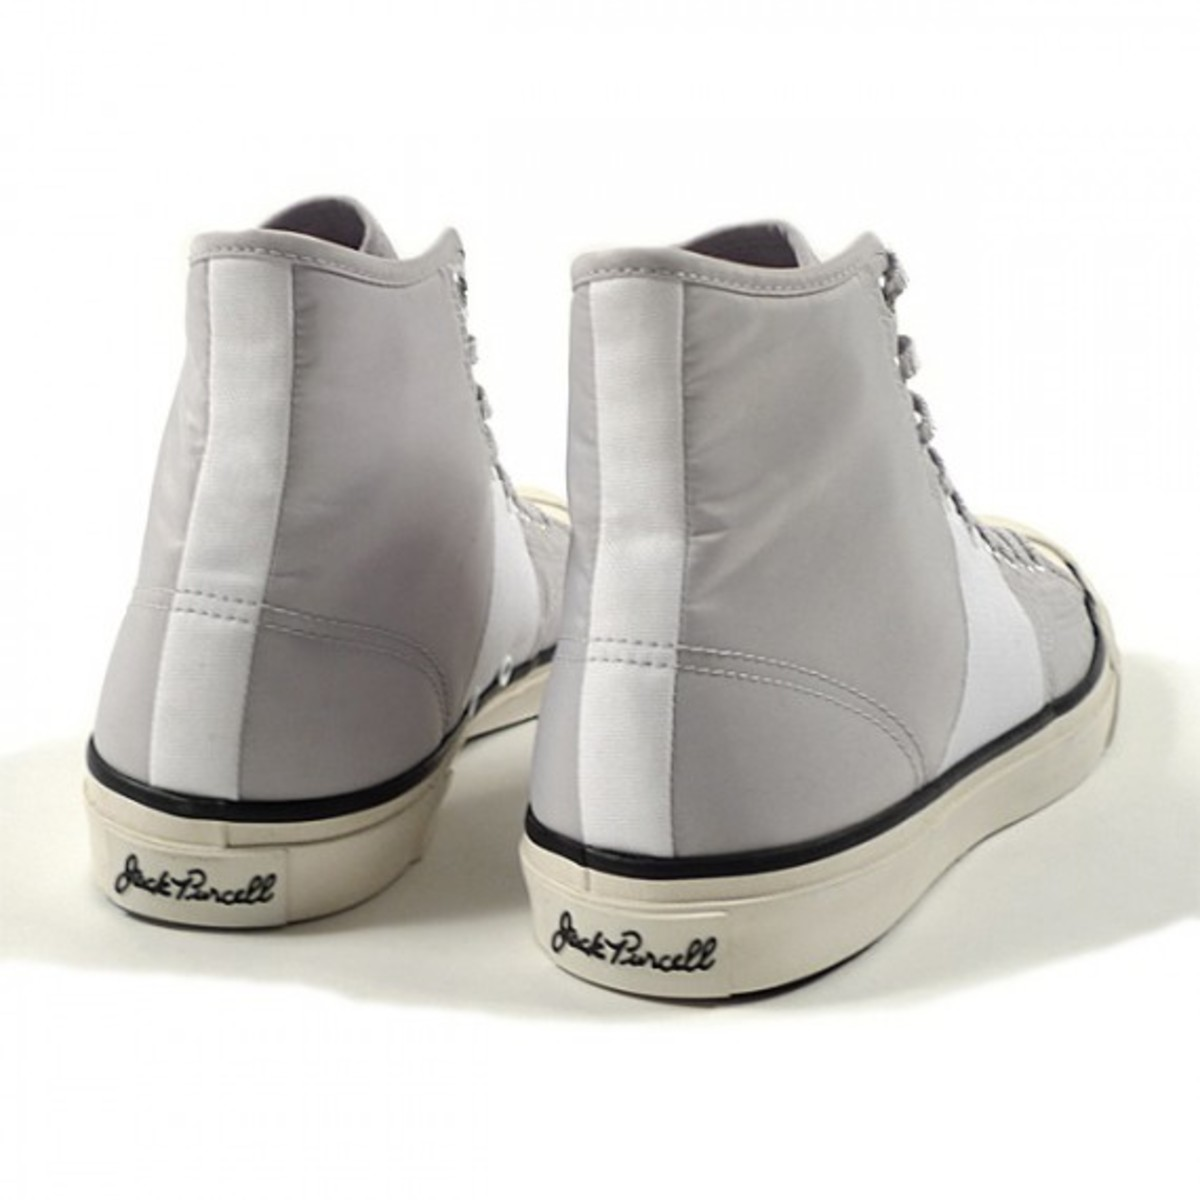 converse-first-string-jack-purcell-johnny-04